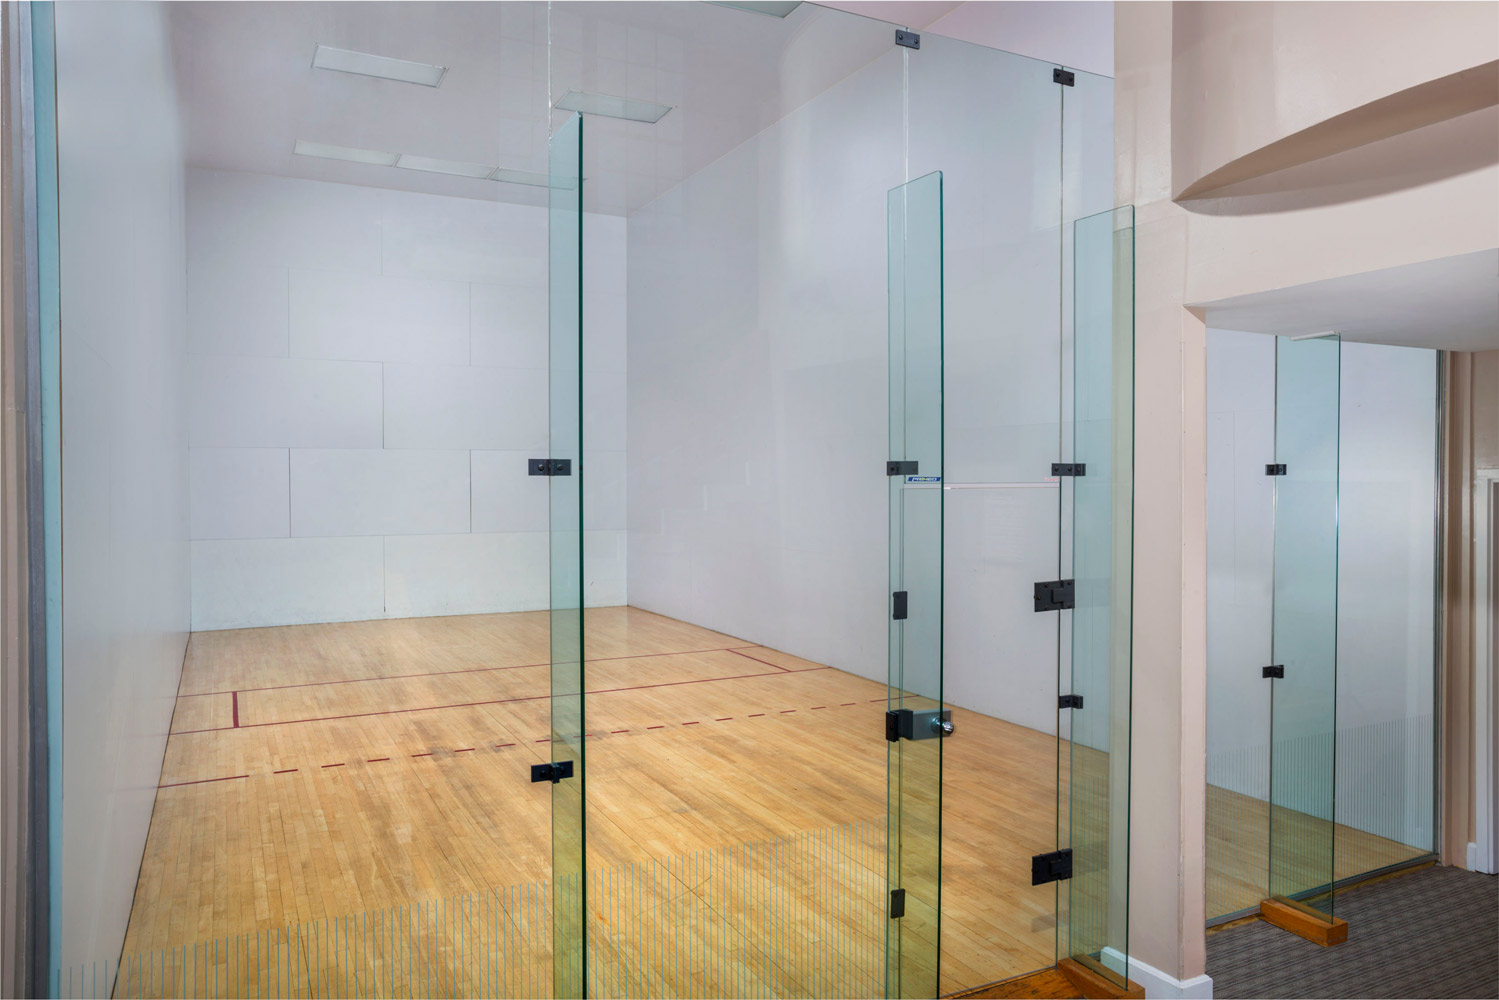 Indoor racquetball court at Seneca Club Apartments in Germantown, MD